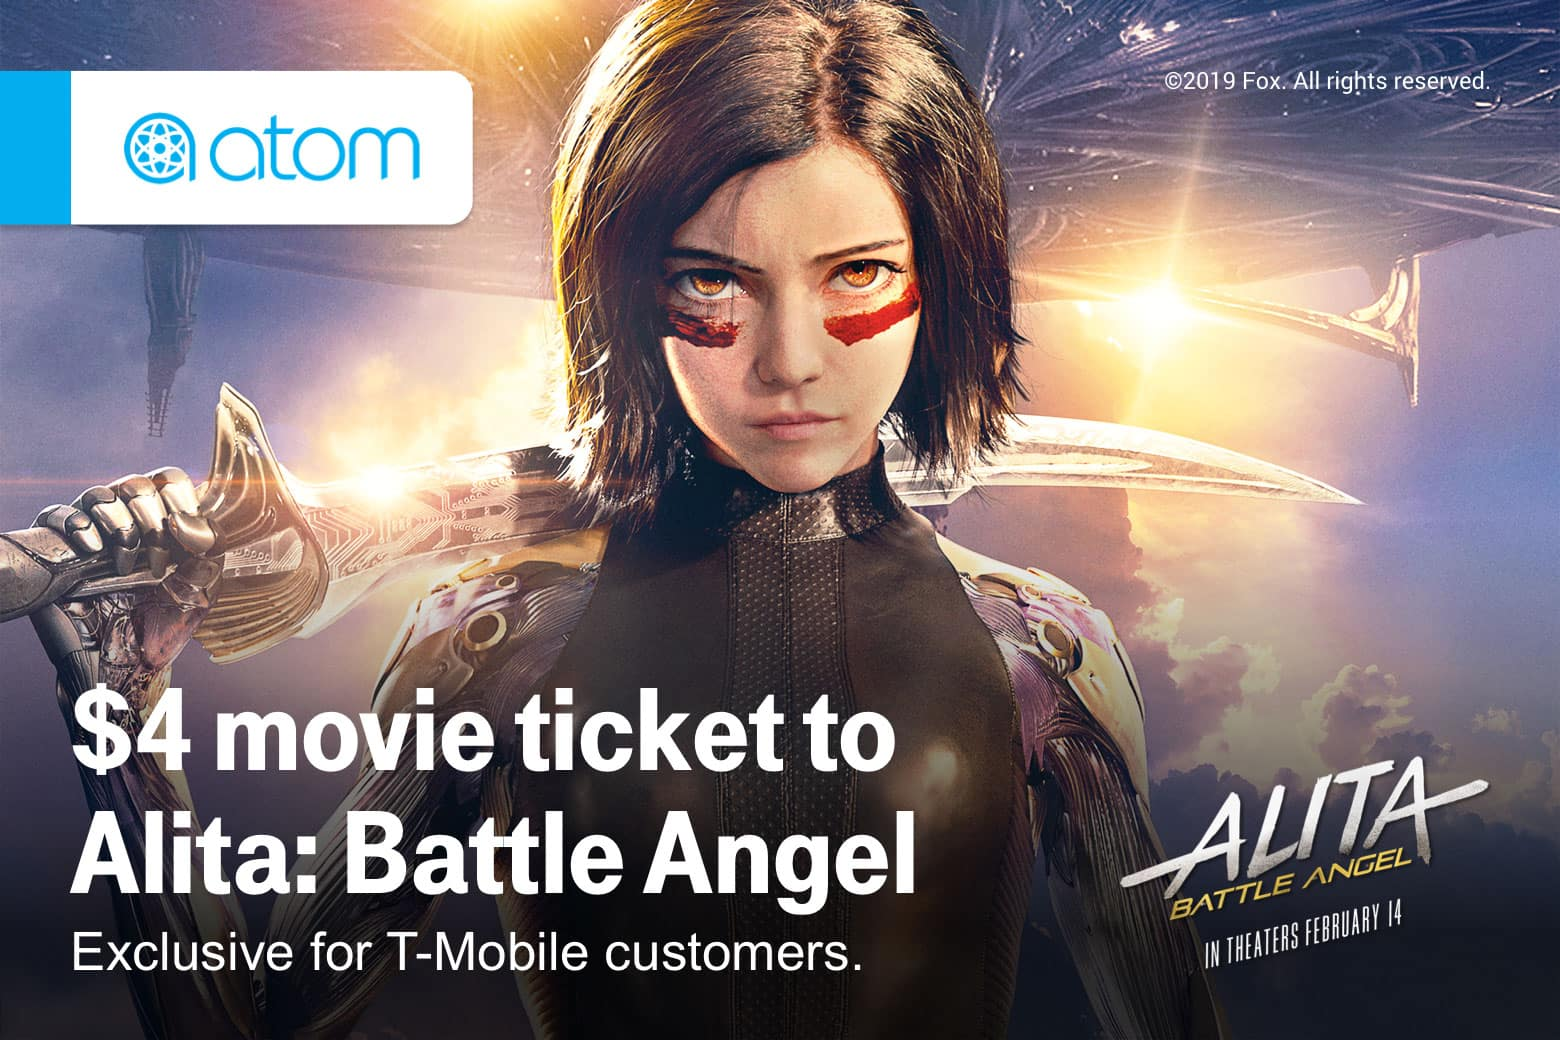 T-Mobile Customers (02/12): $4 Alita Battle Angel movie ticket, Shell 10cents off per gallon, Taco Bell Free Taco, Pizza Hut: $7.99 2 topping large + free cinnabon mini roll